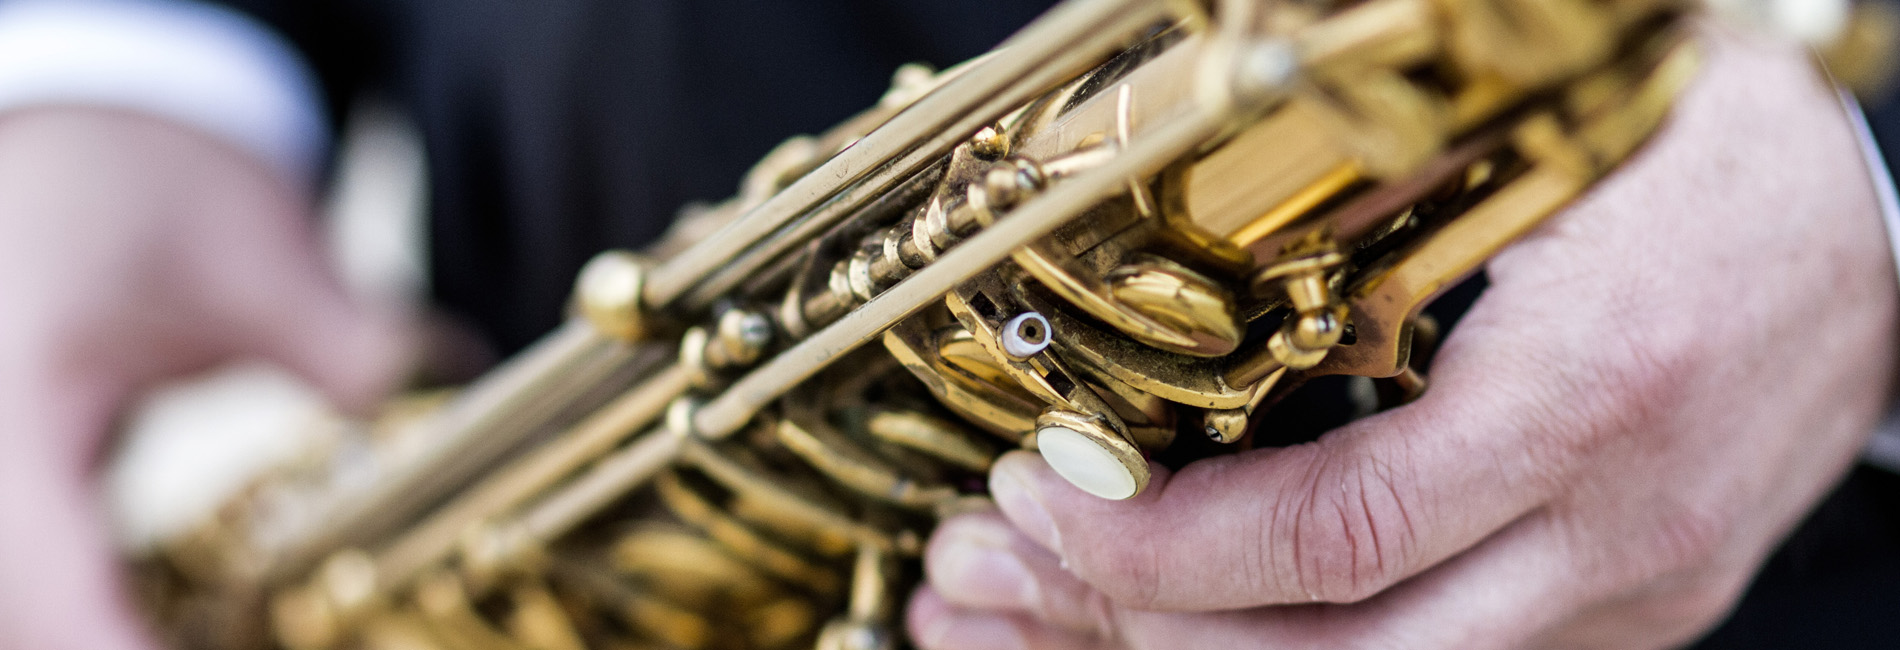 franklin-schieman-sax-1-header